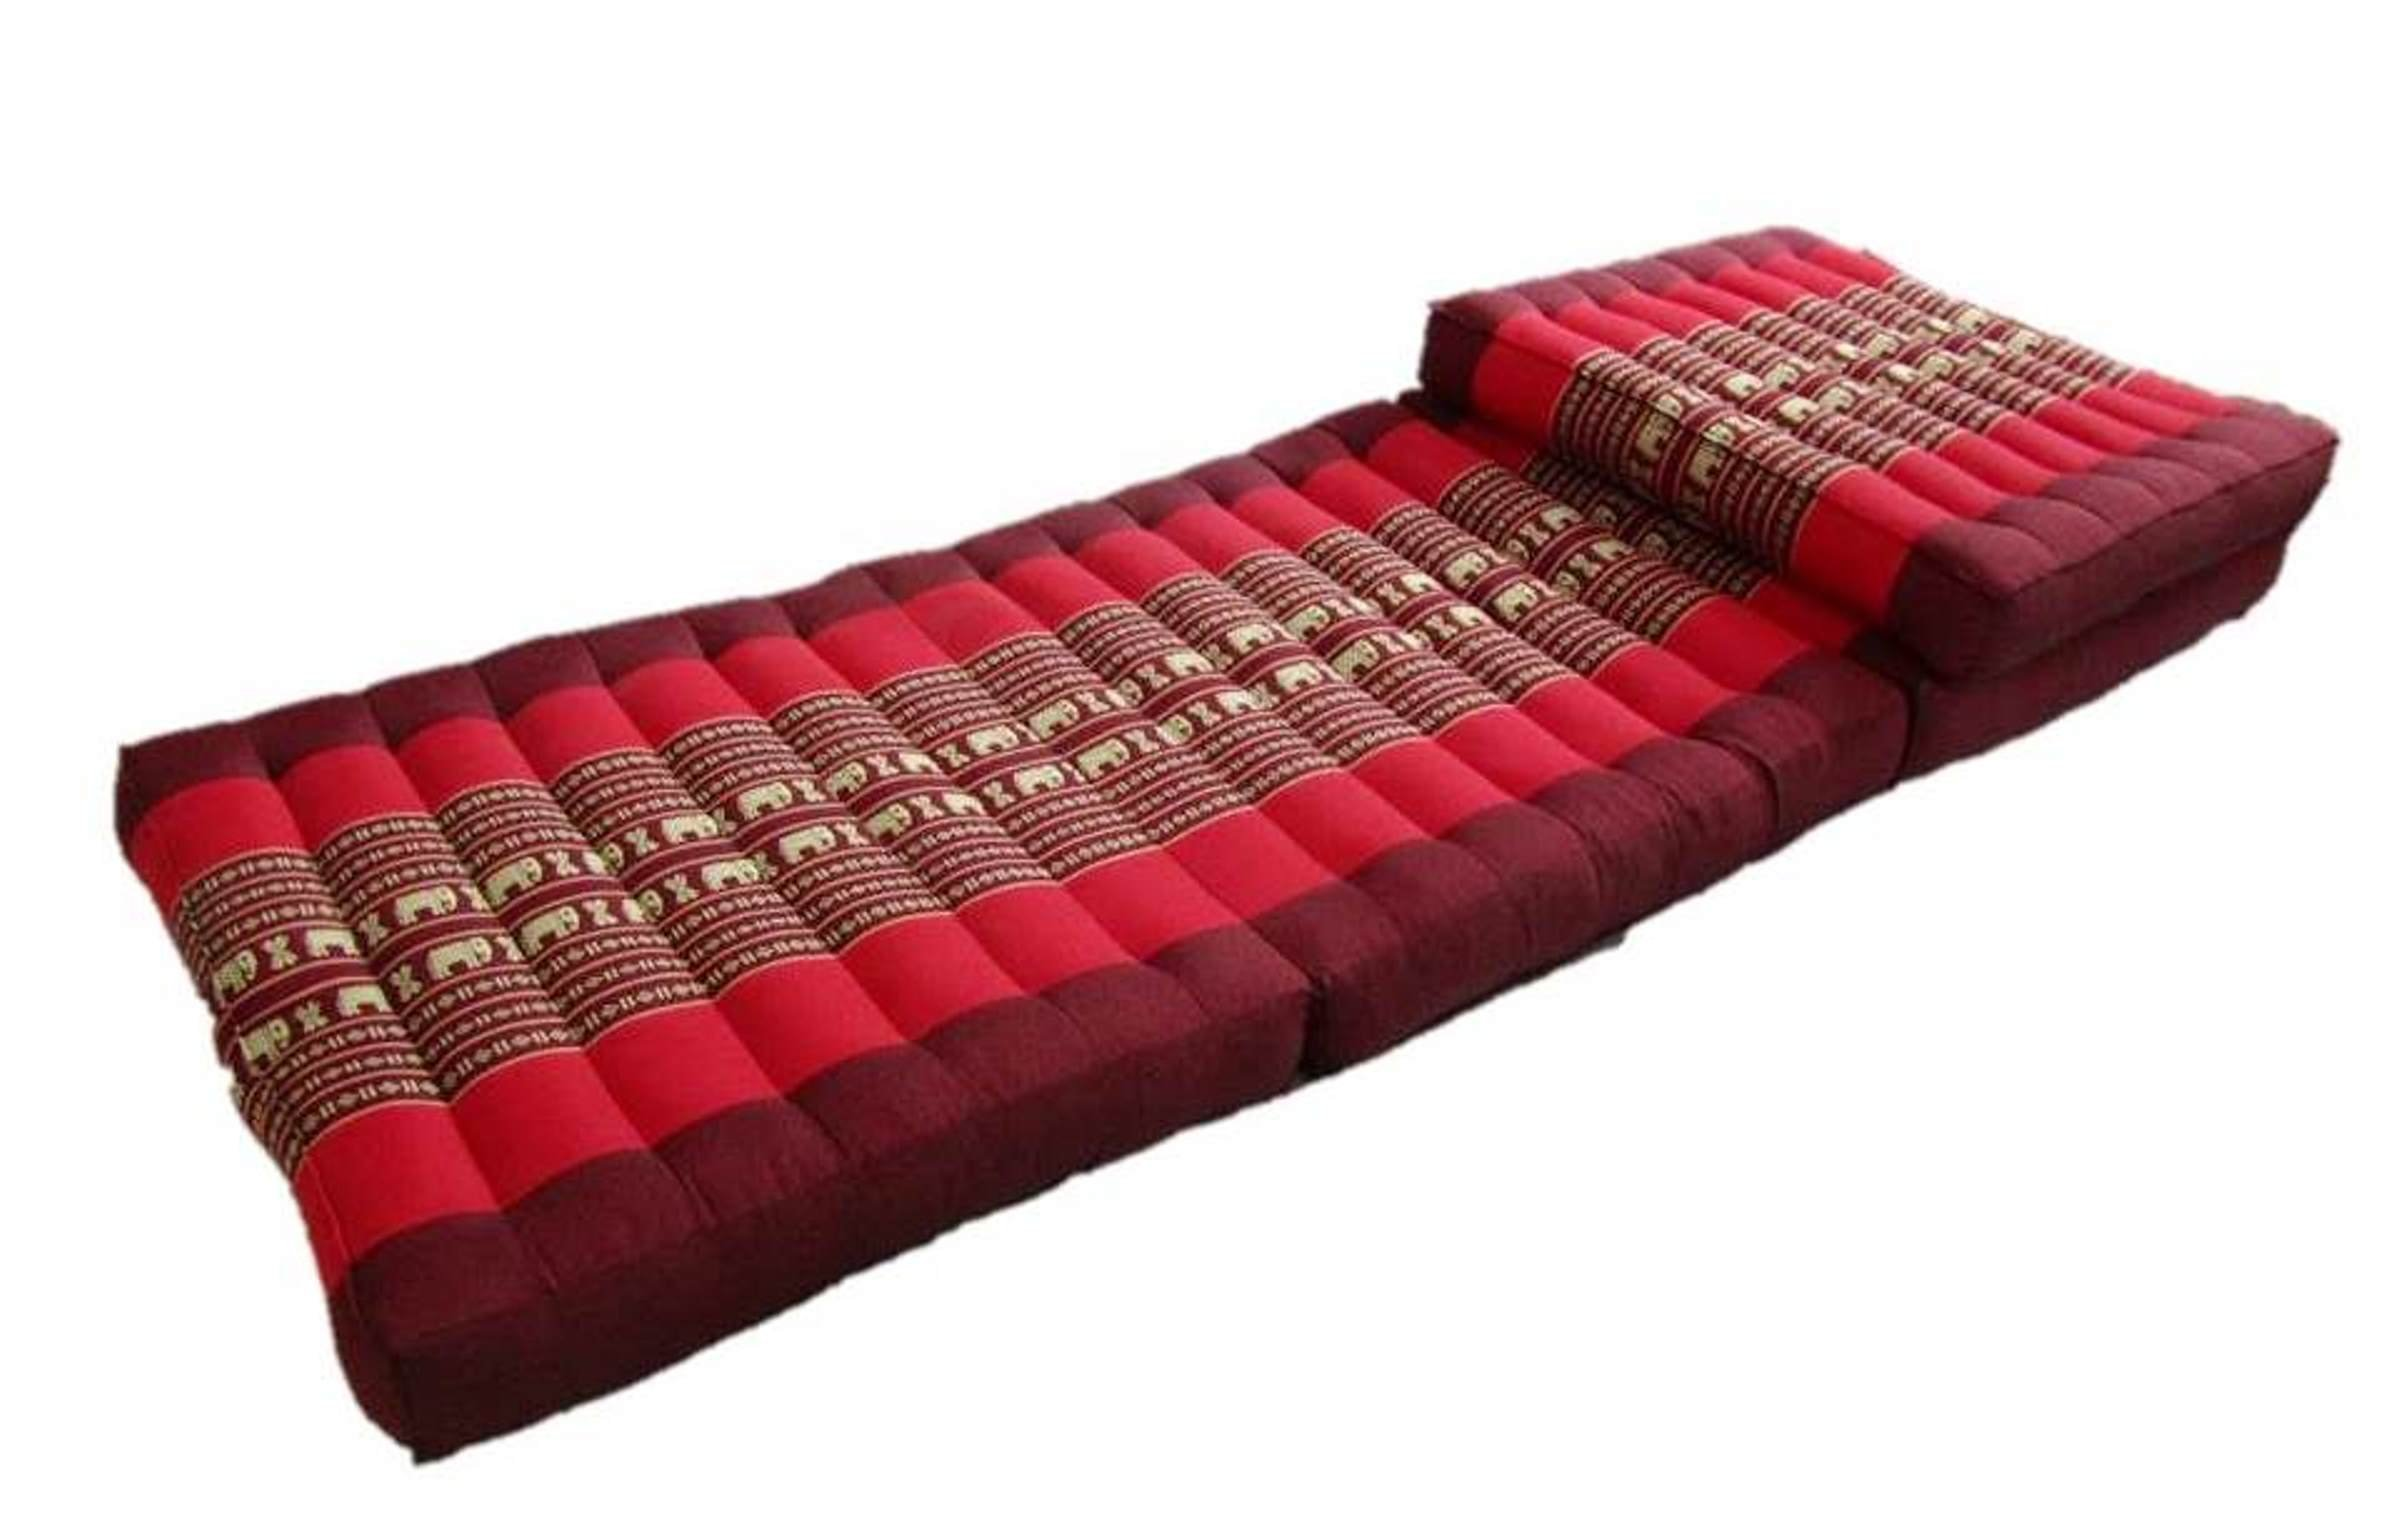 Large Kapok Stuffing Daybed Mattress Firm Folding Floor Lounge Mat 80 Inches (Elephant Raspberry)